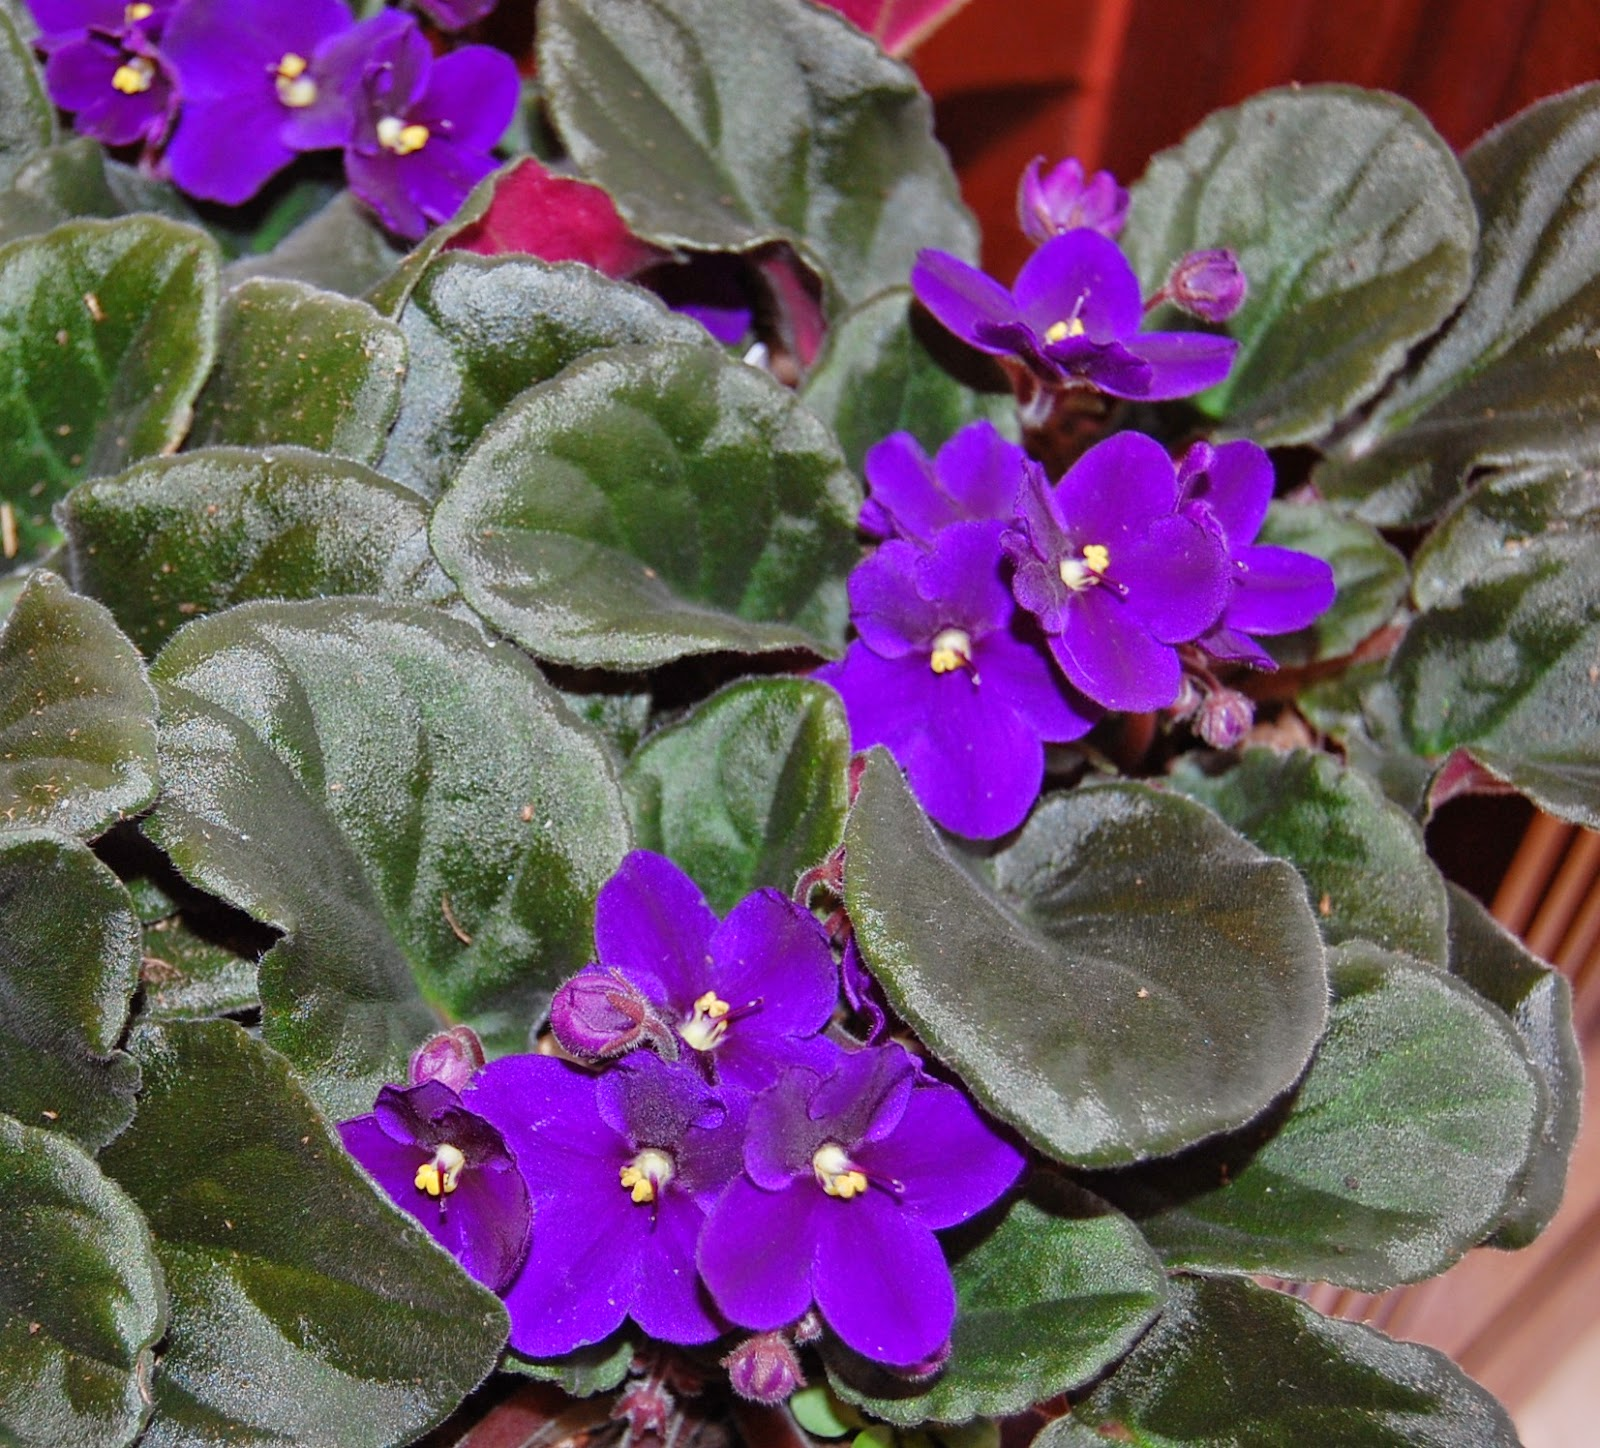 Their Fuzzy Deep Green Leaves And Brightly Colored Purple Flowers Are Sure To Brighten Any Location Although Violets Do Require A Certain Amount Of